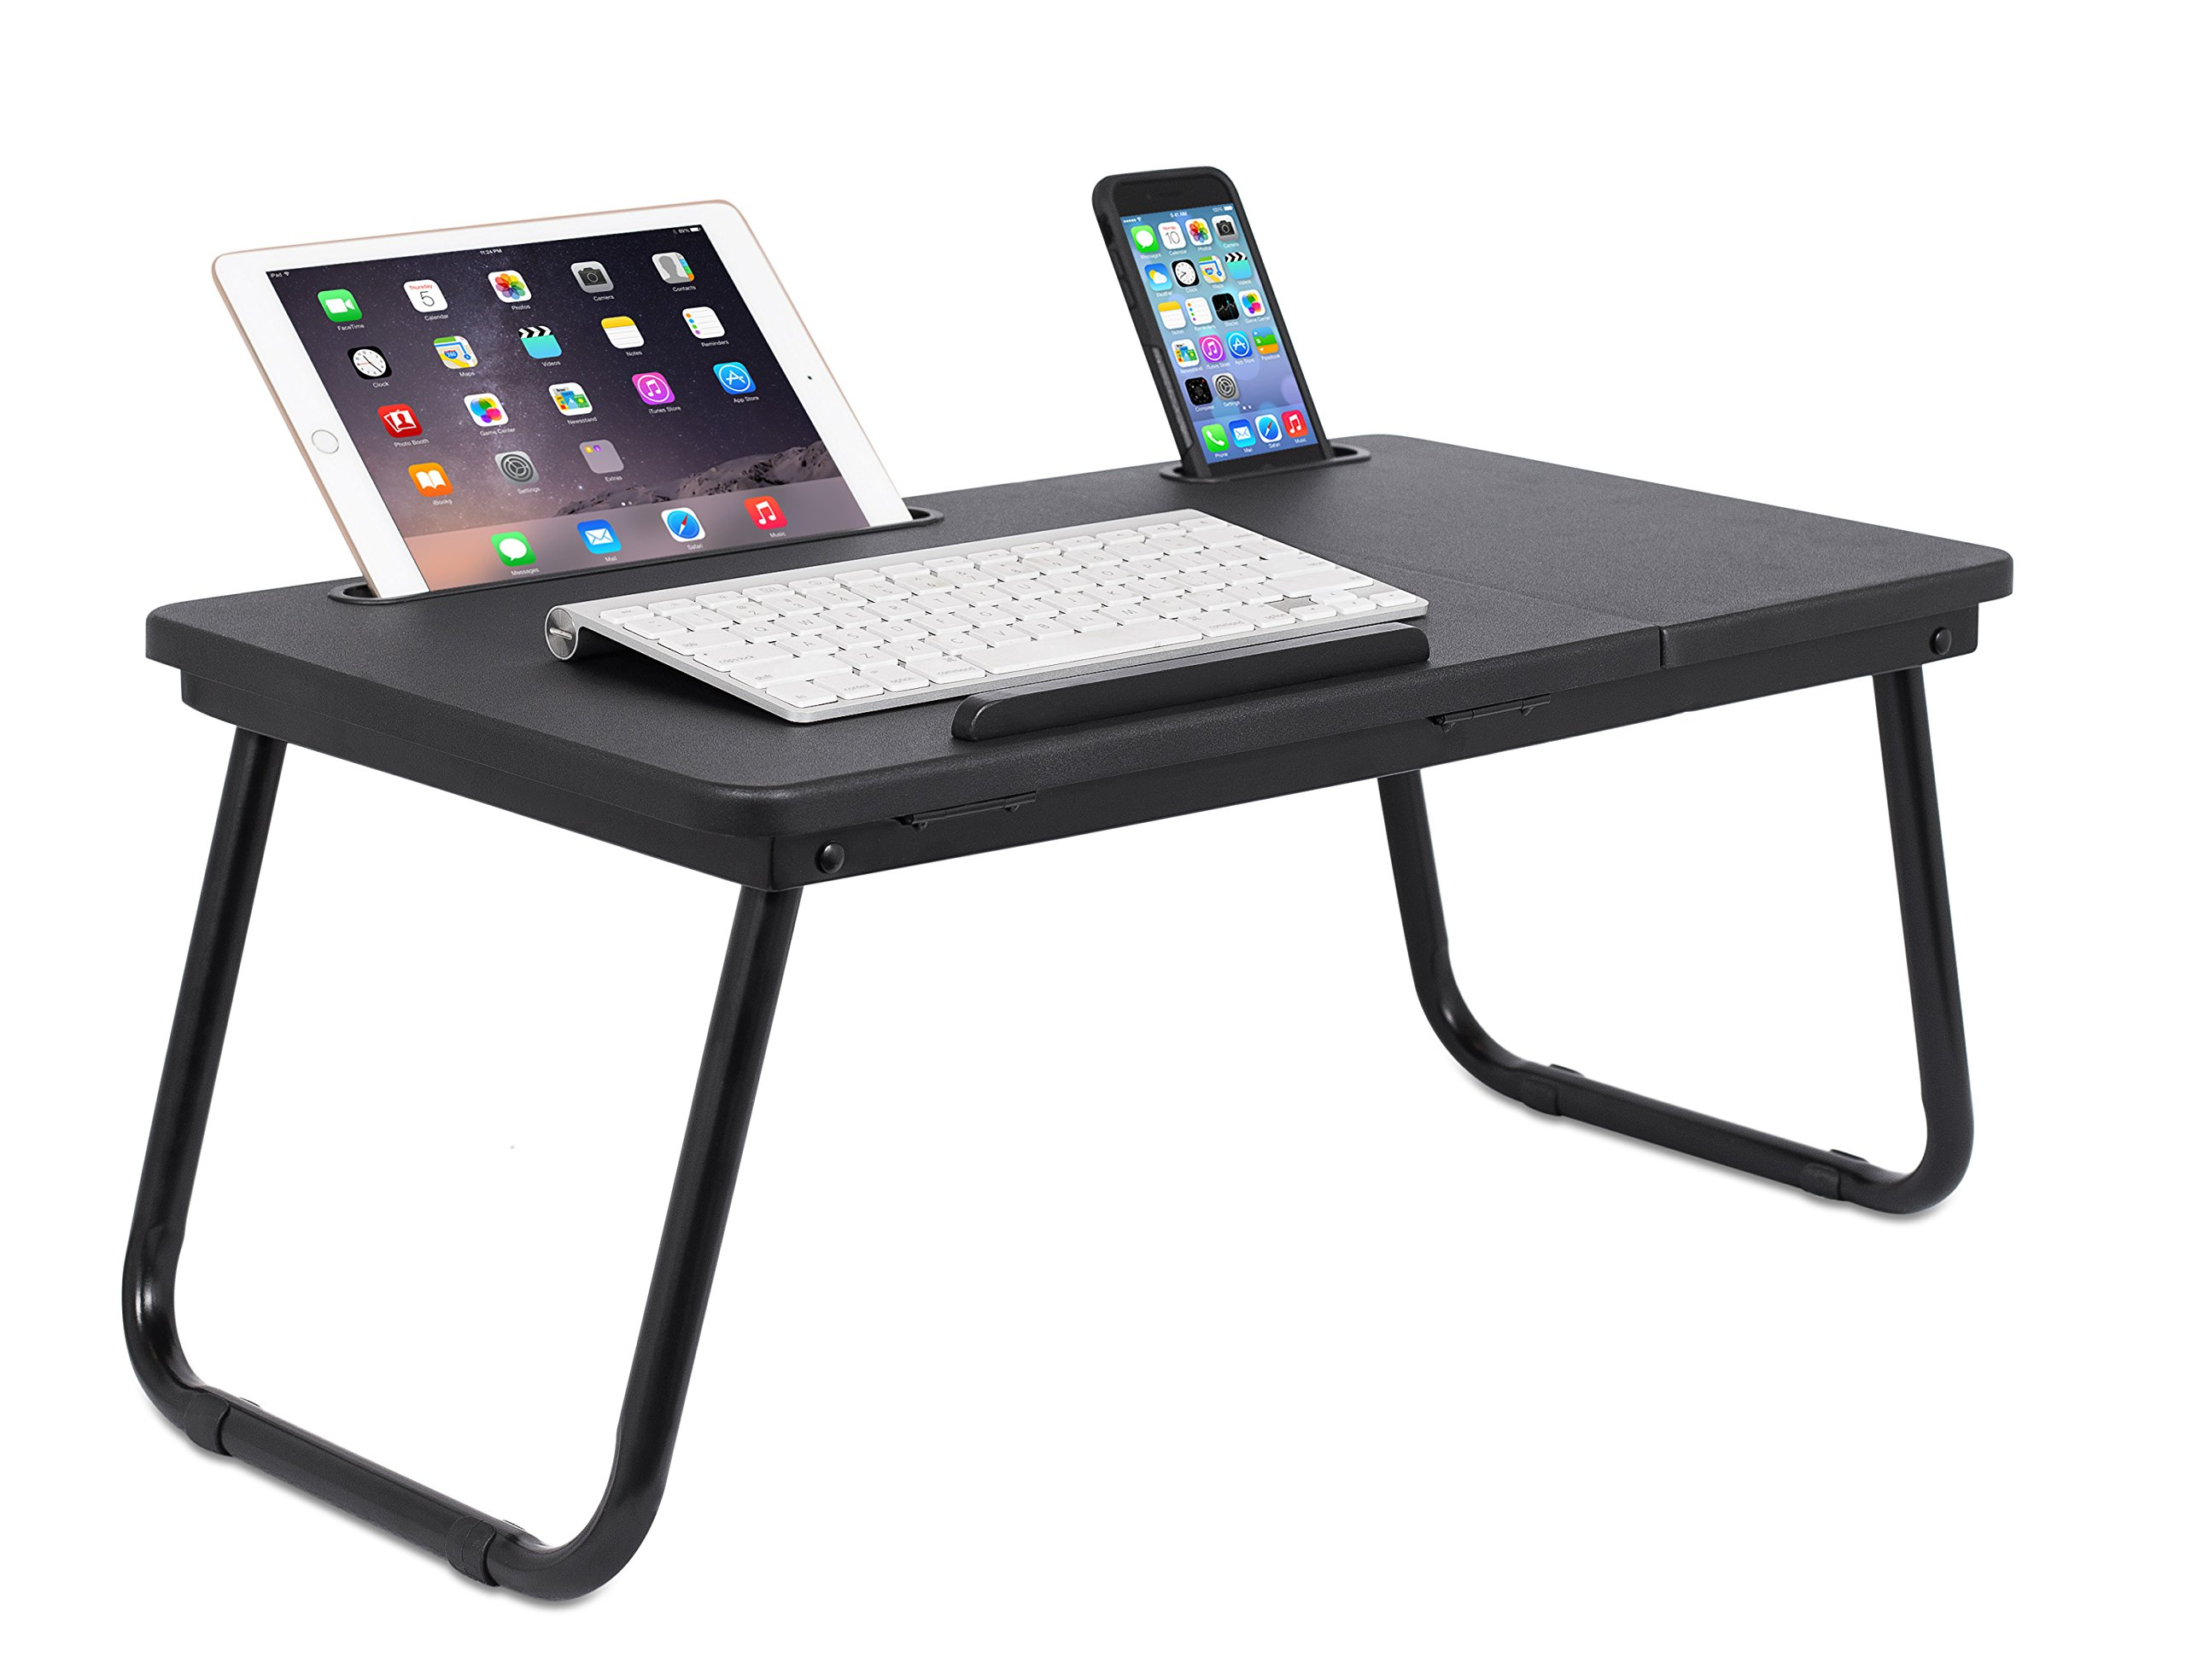 Sofia + Sam Lap Tray with Tablet & Phone Slots | Metal Folding Legs | Lap Desk with Tilting Top | Laptop Stand | Breakfast Serving Bed Tray | Black by Sofia + Sam